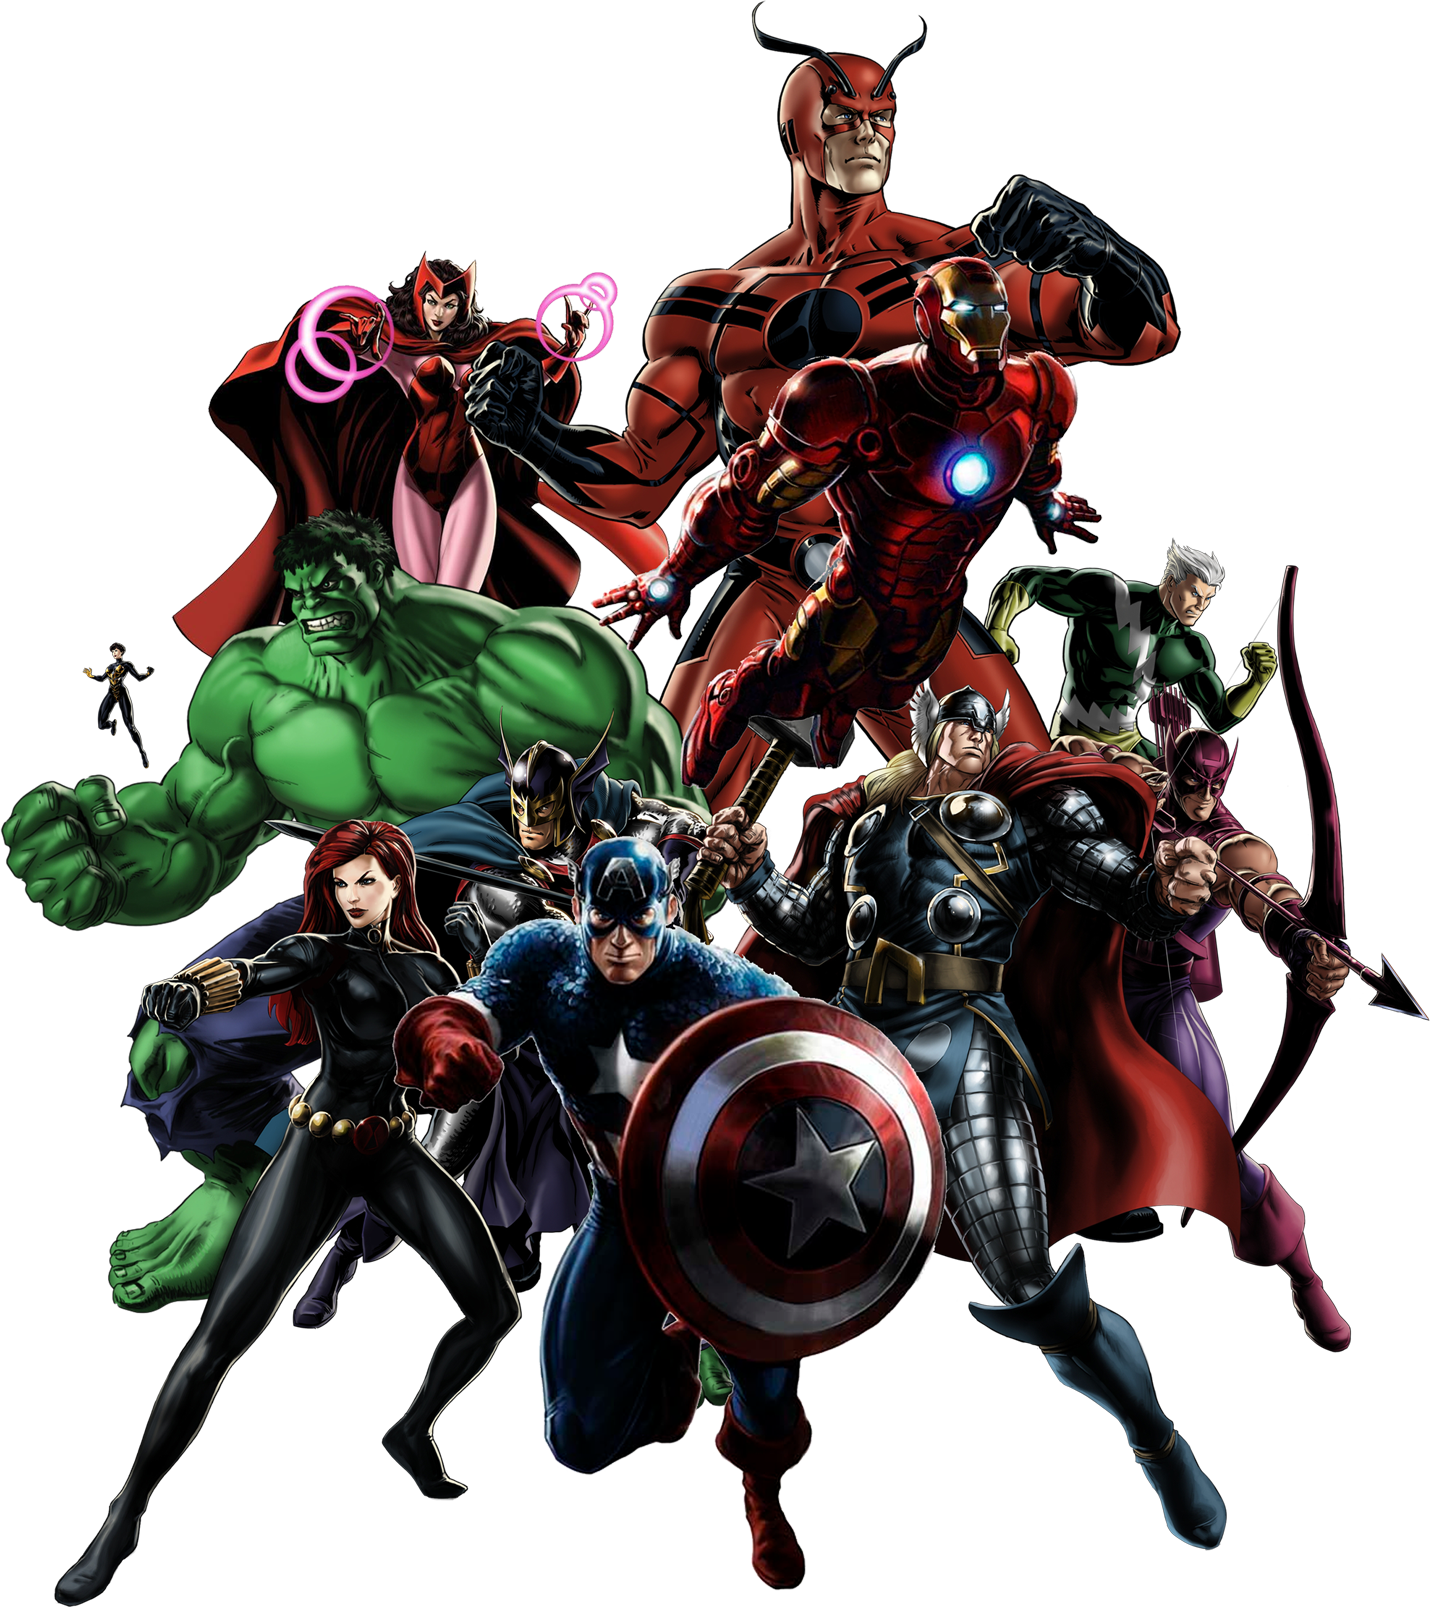 Marvel png images. Image avengers earth from